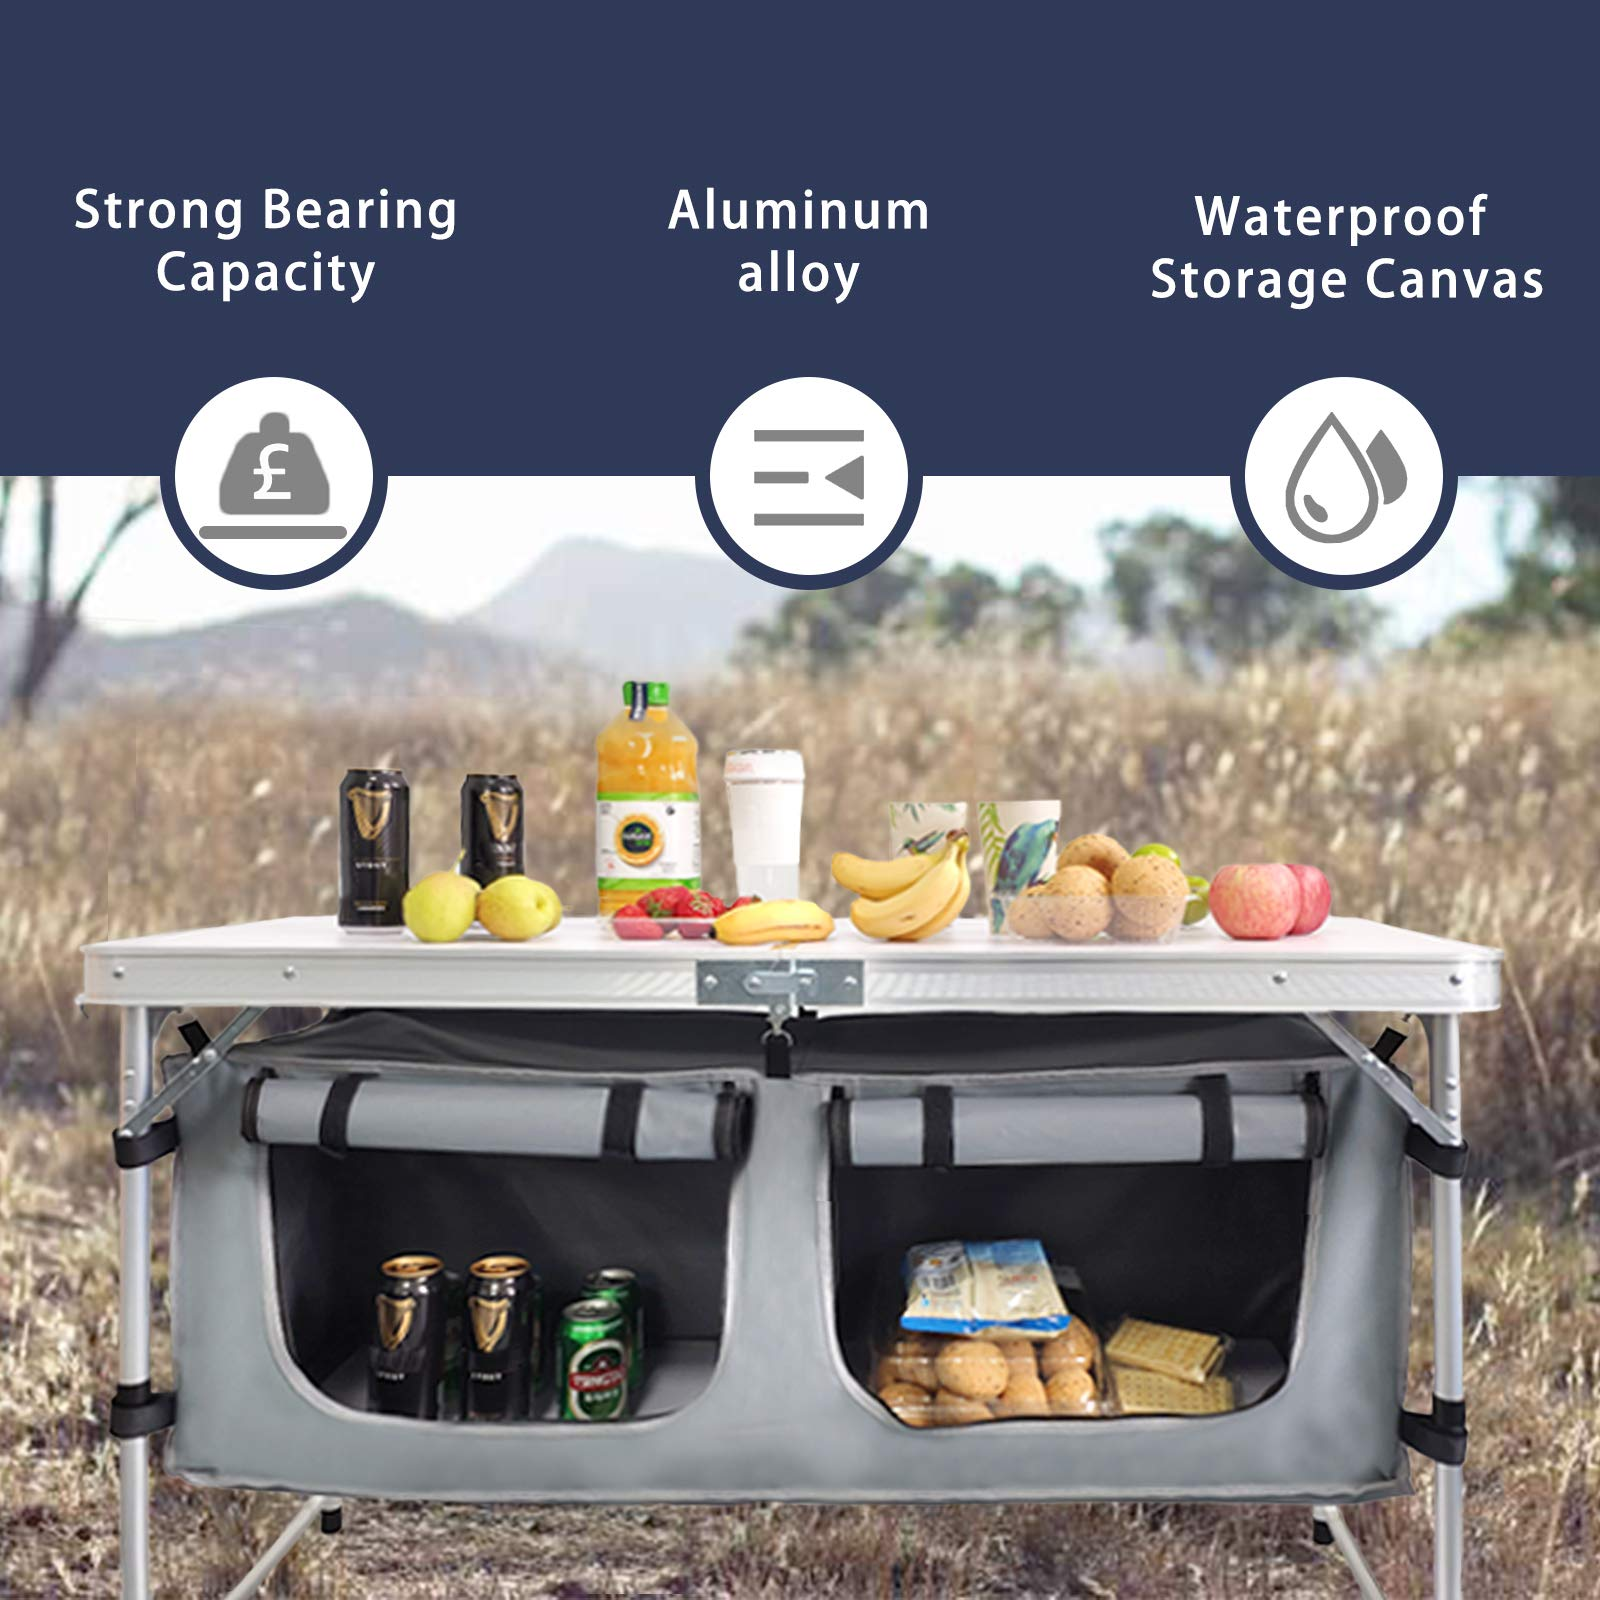 Camp Field Camping Table with Adjustable Legs for Beach, Backyards, BBQ, Party and Picnic Table …